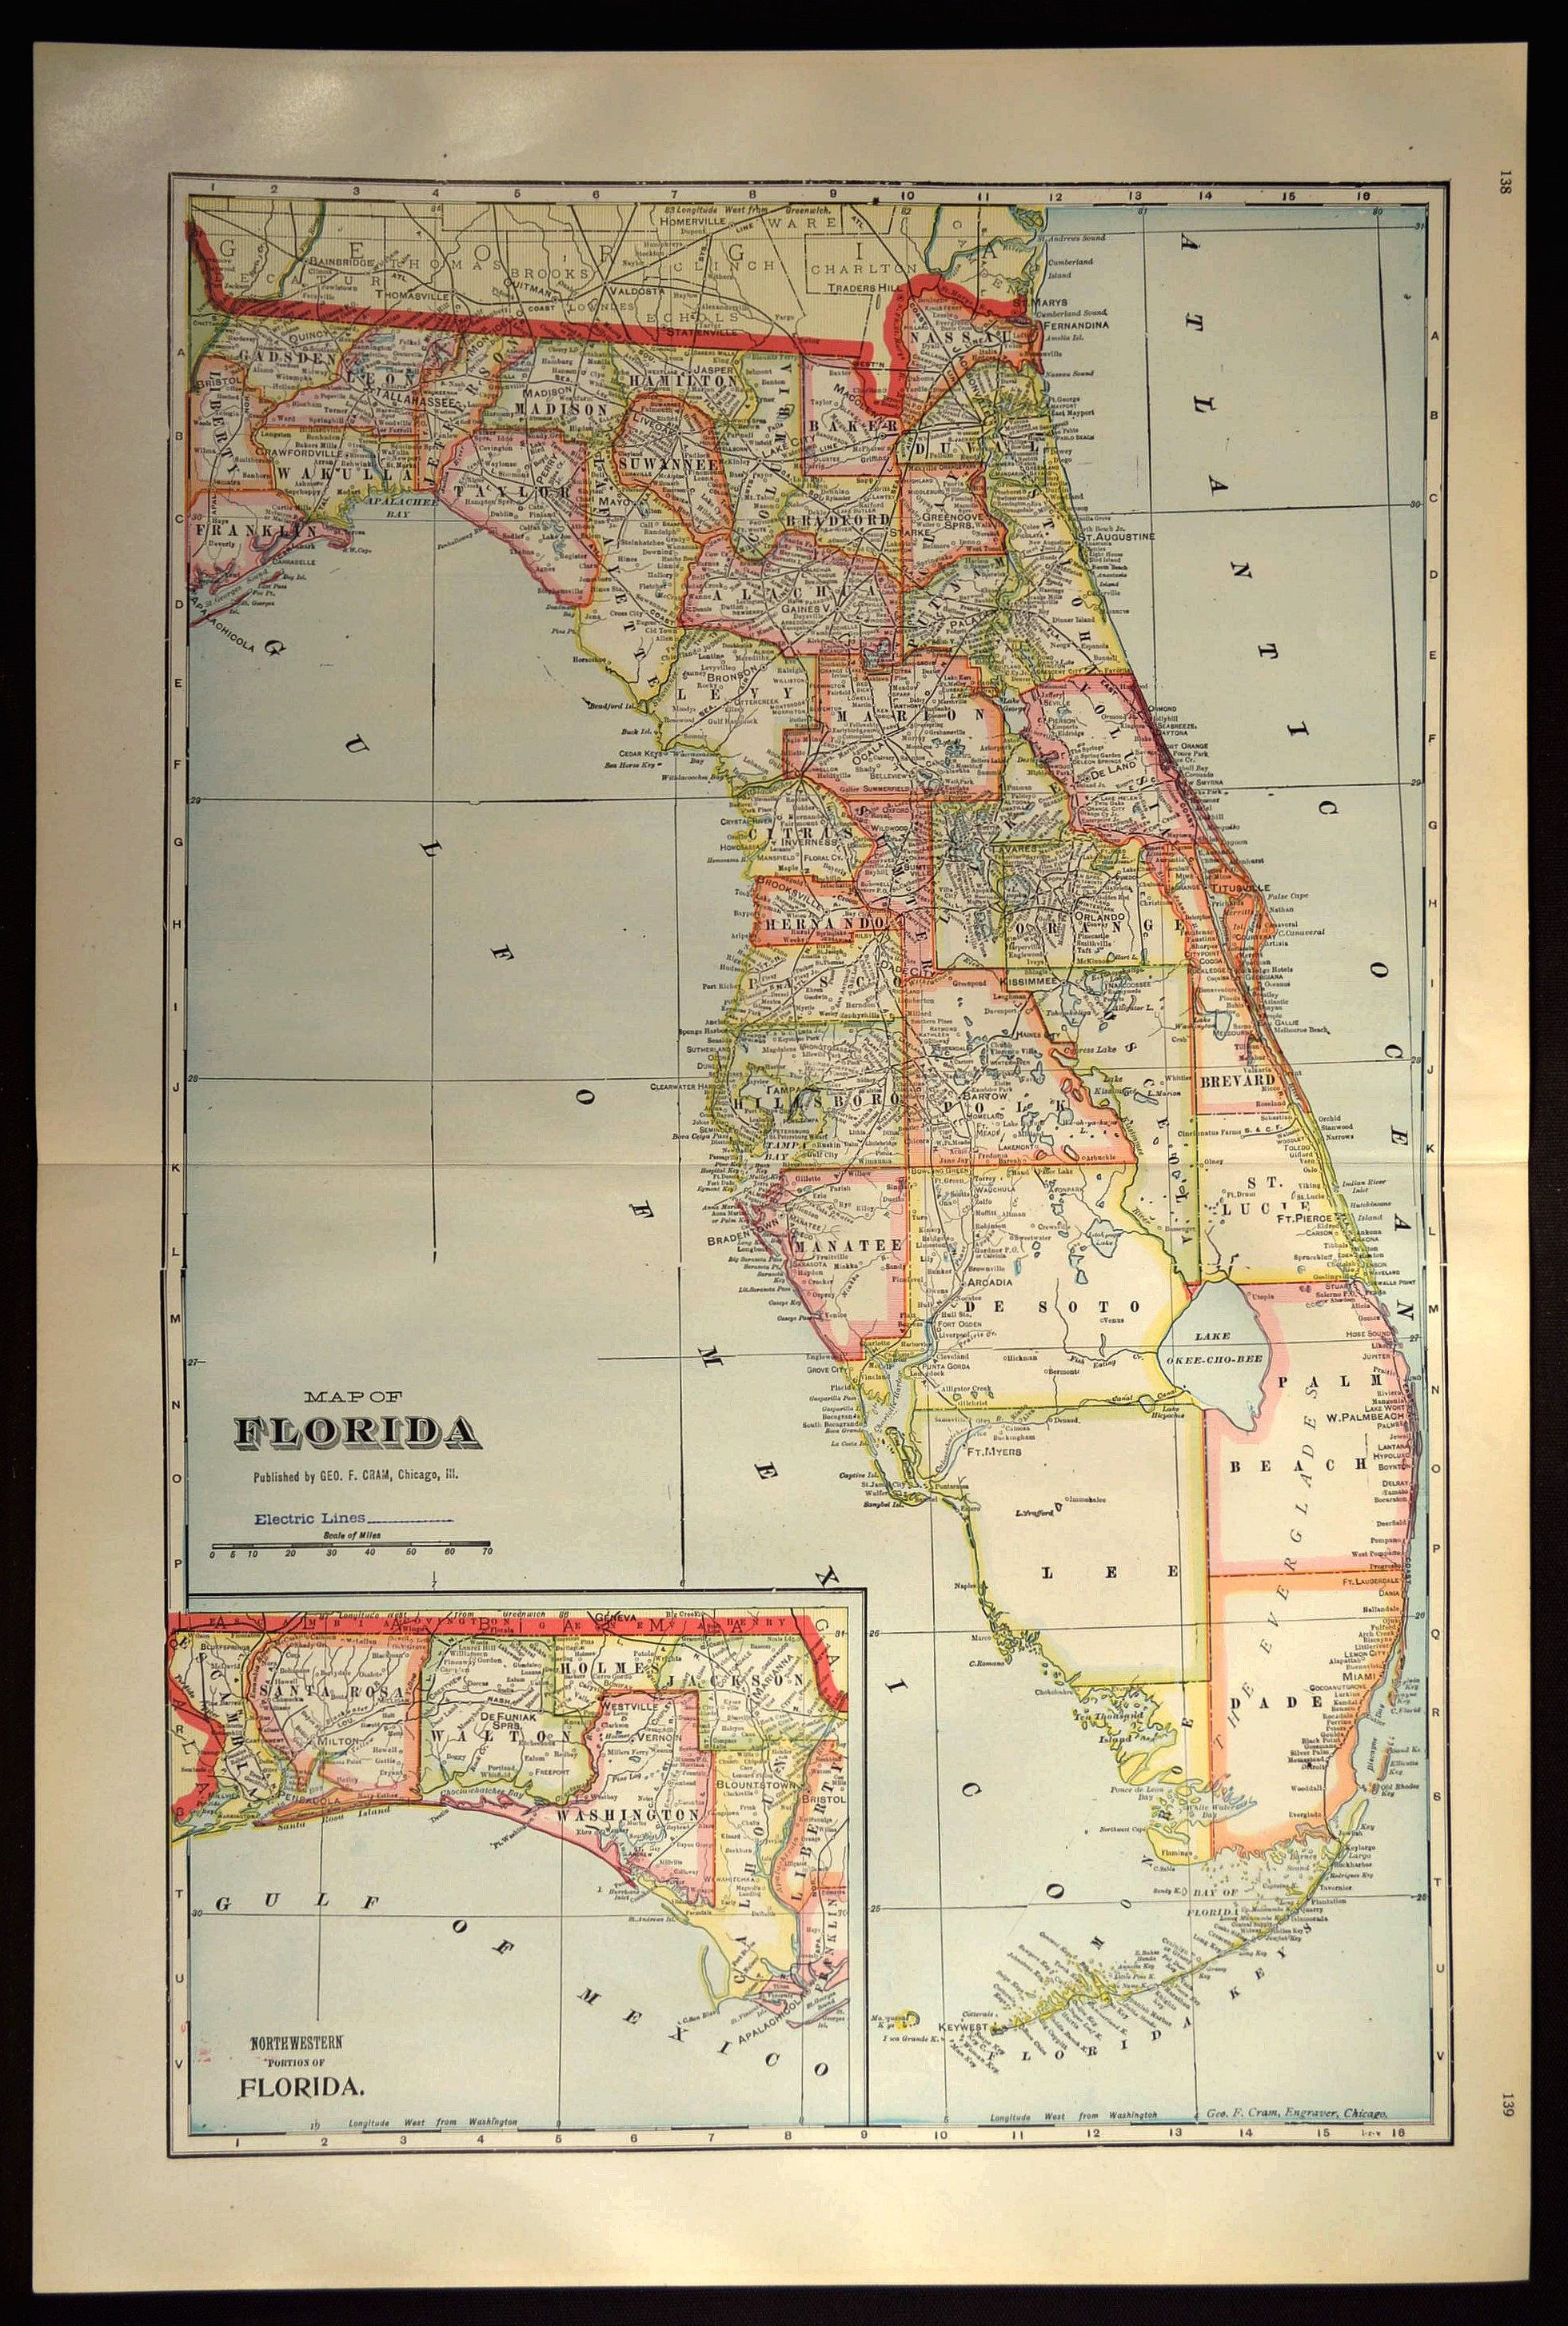 County Map Florida.Florida County Map Florida Large Antique Colorful Map Wall Decor